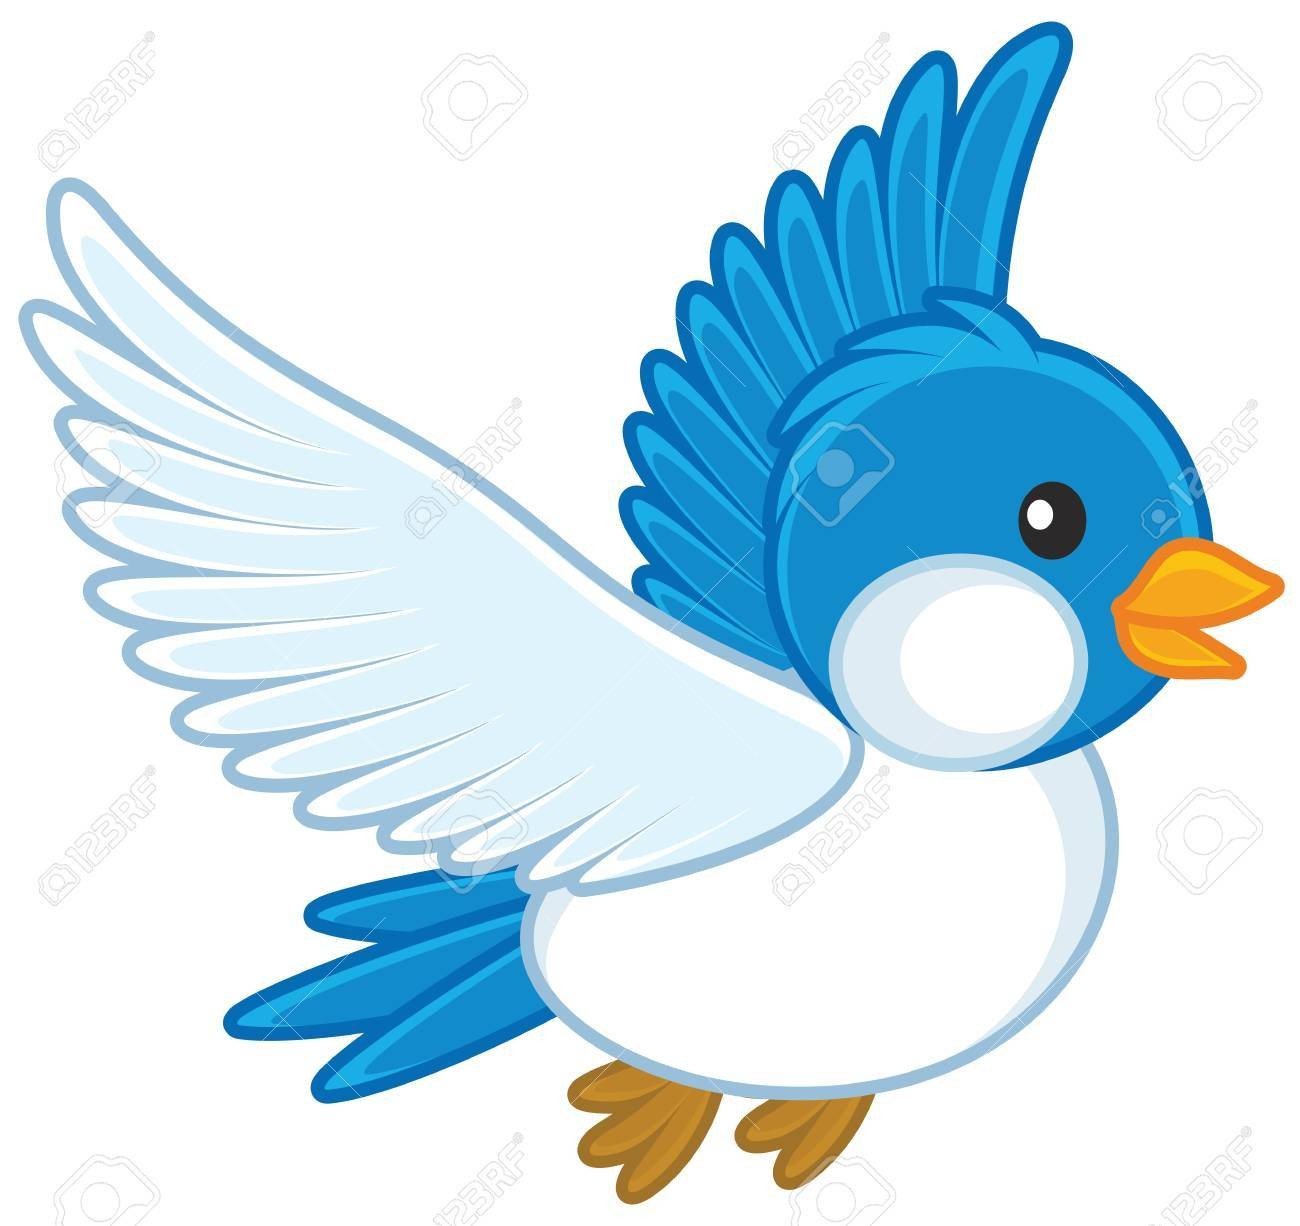 Obird clipart clipart royalty free download In Blue Bird Clipart 70985971 | Clip Art clipart royalty free download